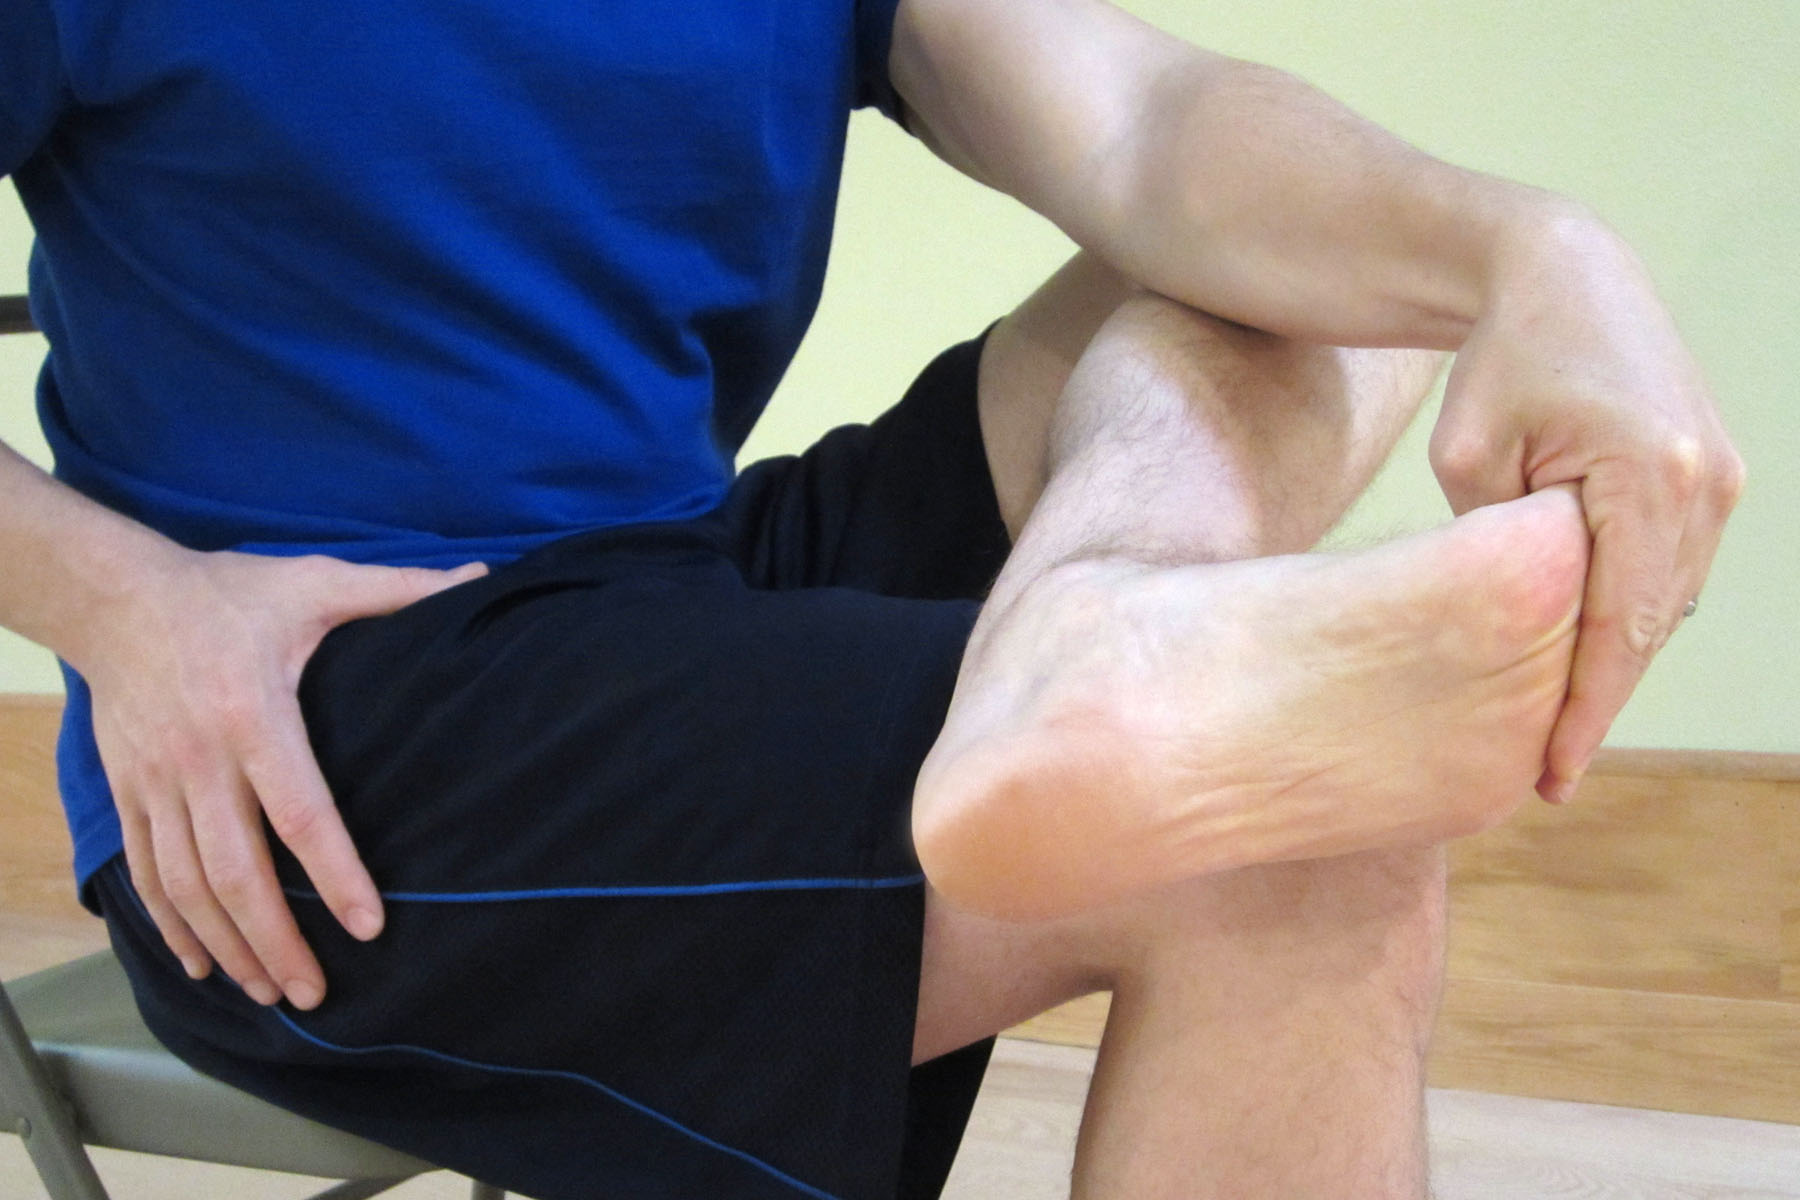 How To Self Treat Plantar Fasciitis The Physical Therapy Advisor